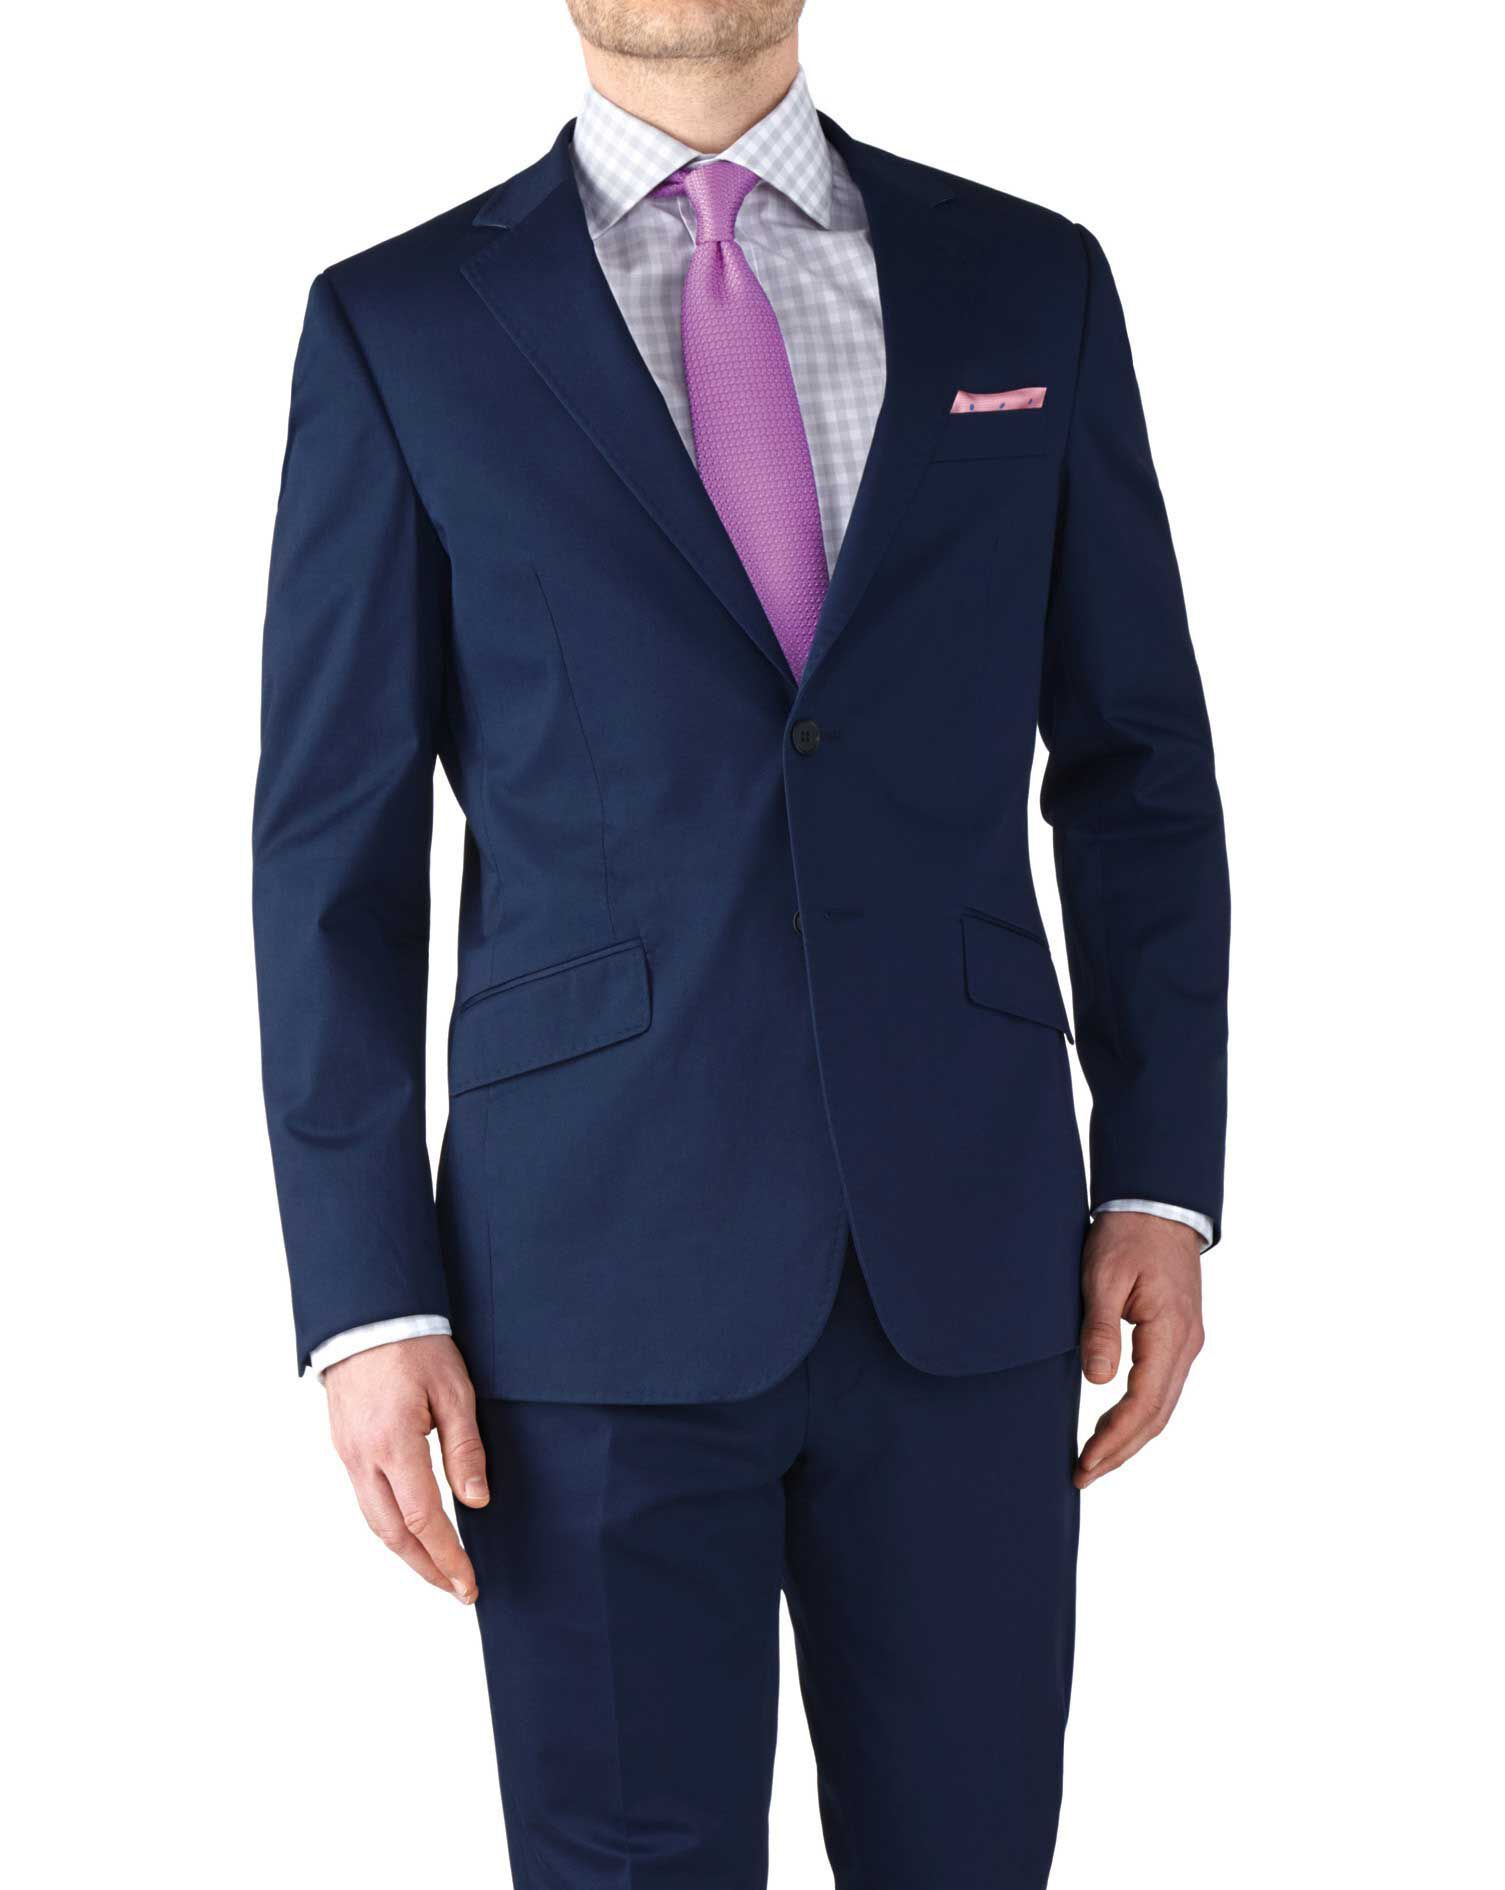 Navy Slim Fit Italian Cotton Business Suit Jacket Size 40 by Charles Tyrwhitt